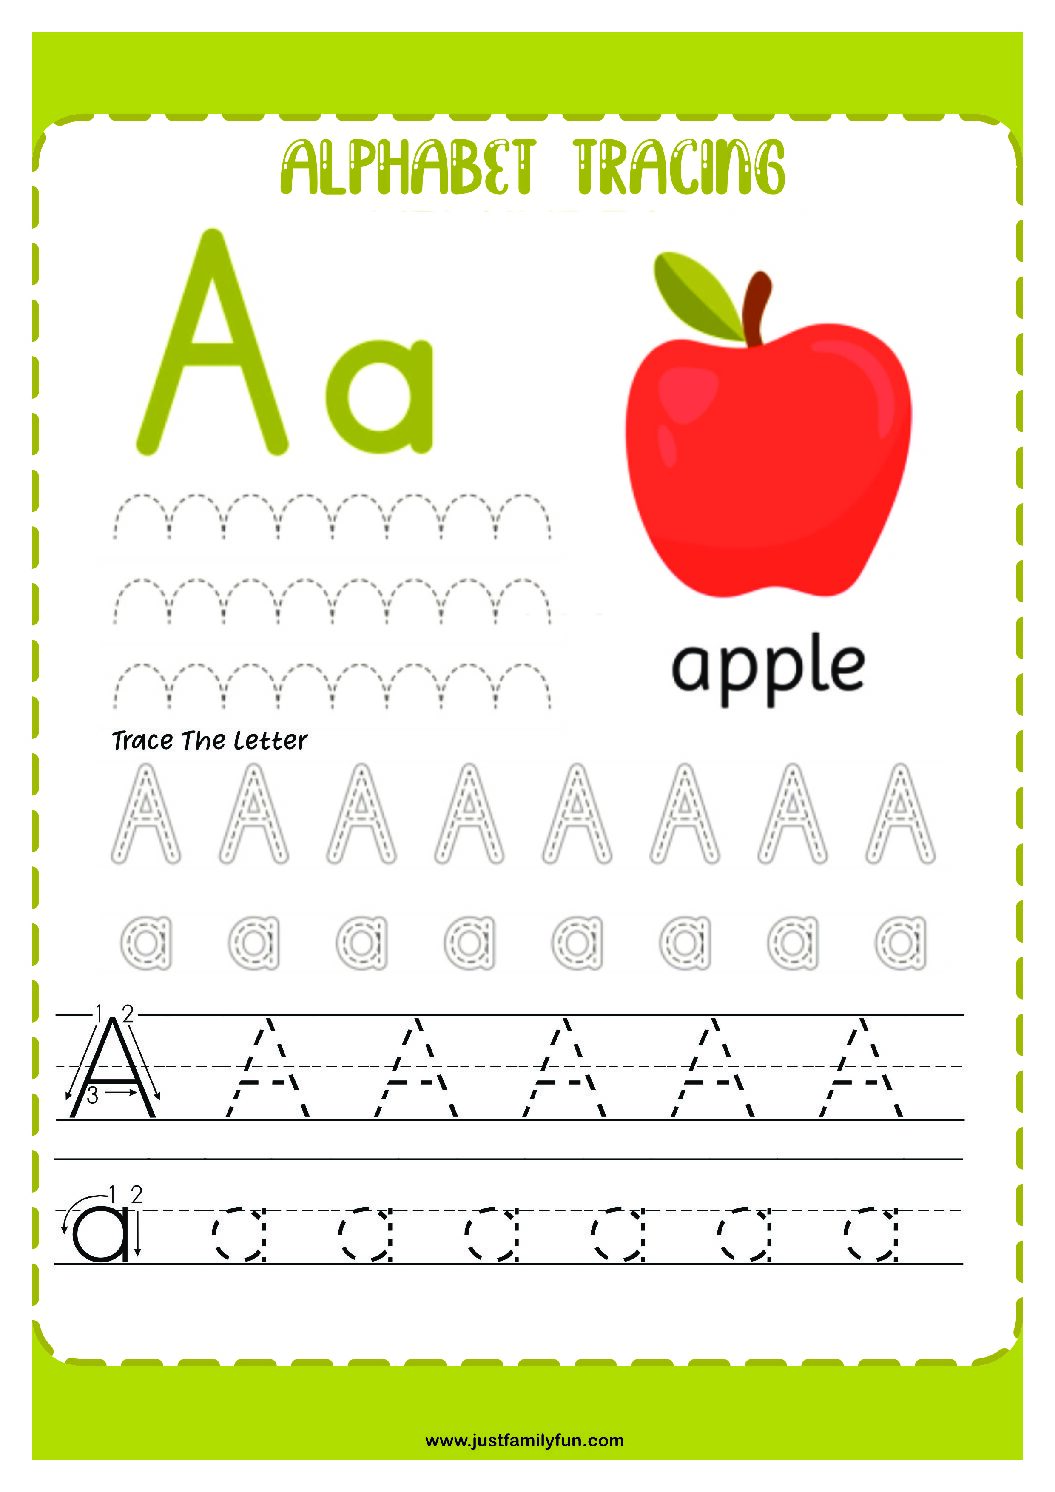 Alphabets_1-pdf Free Printable Trace The Alphabet Worksheets for Kids.